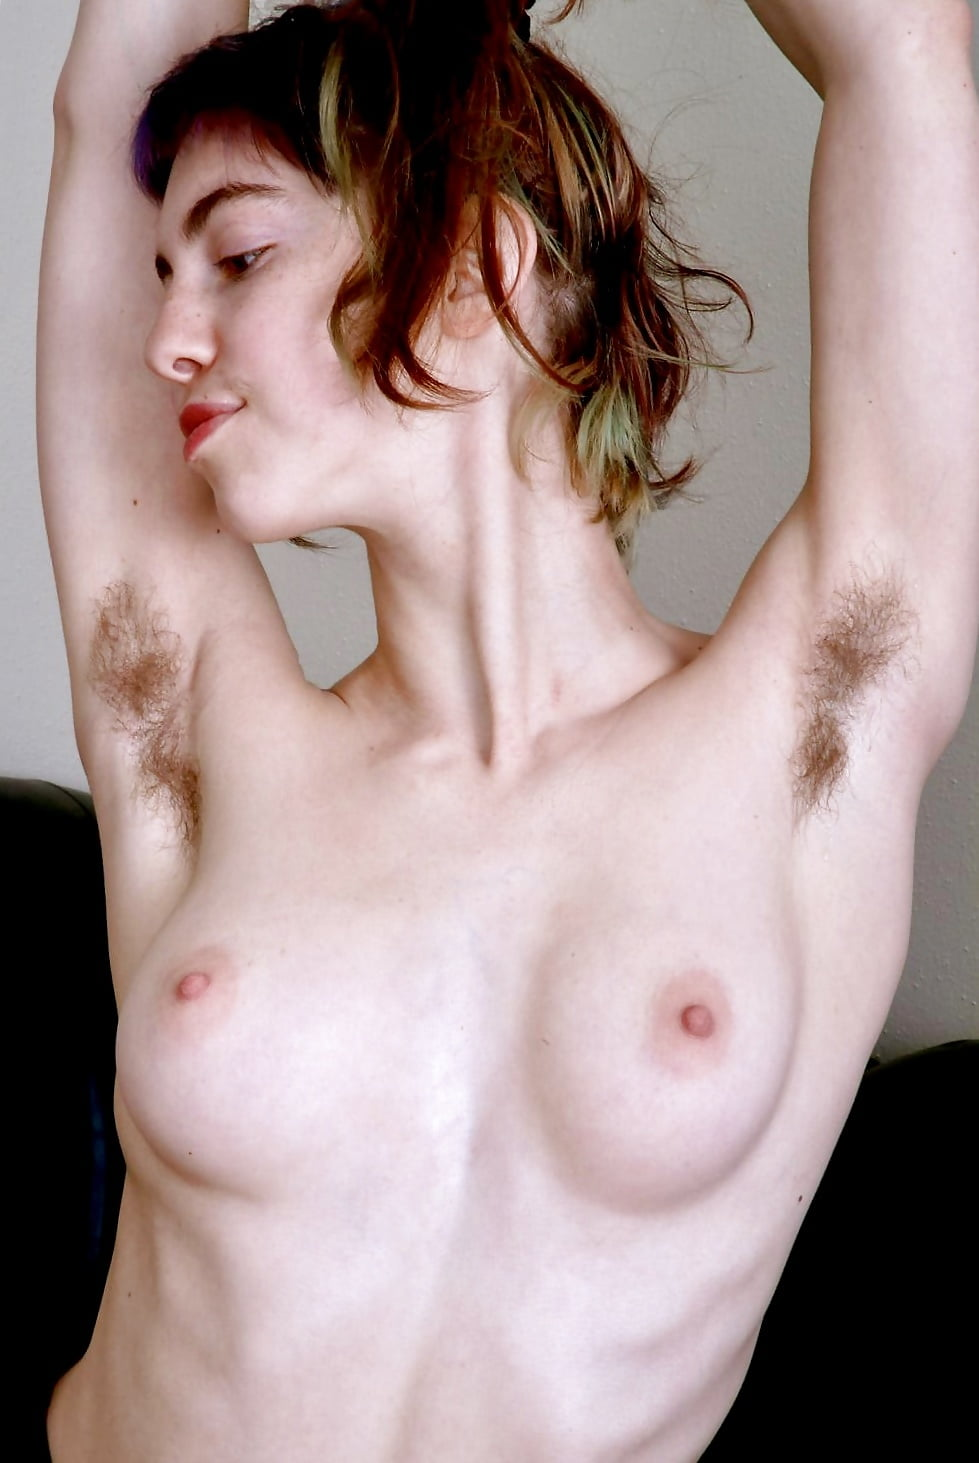 Hot naked girl with hairy armpits, sex with manager